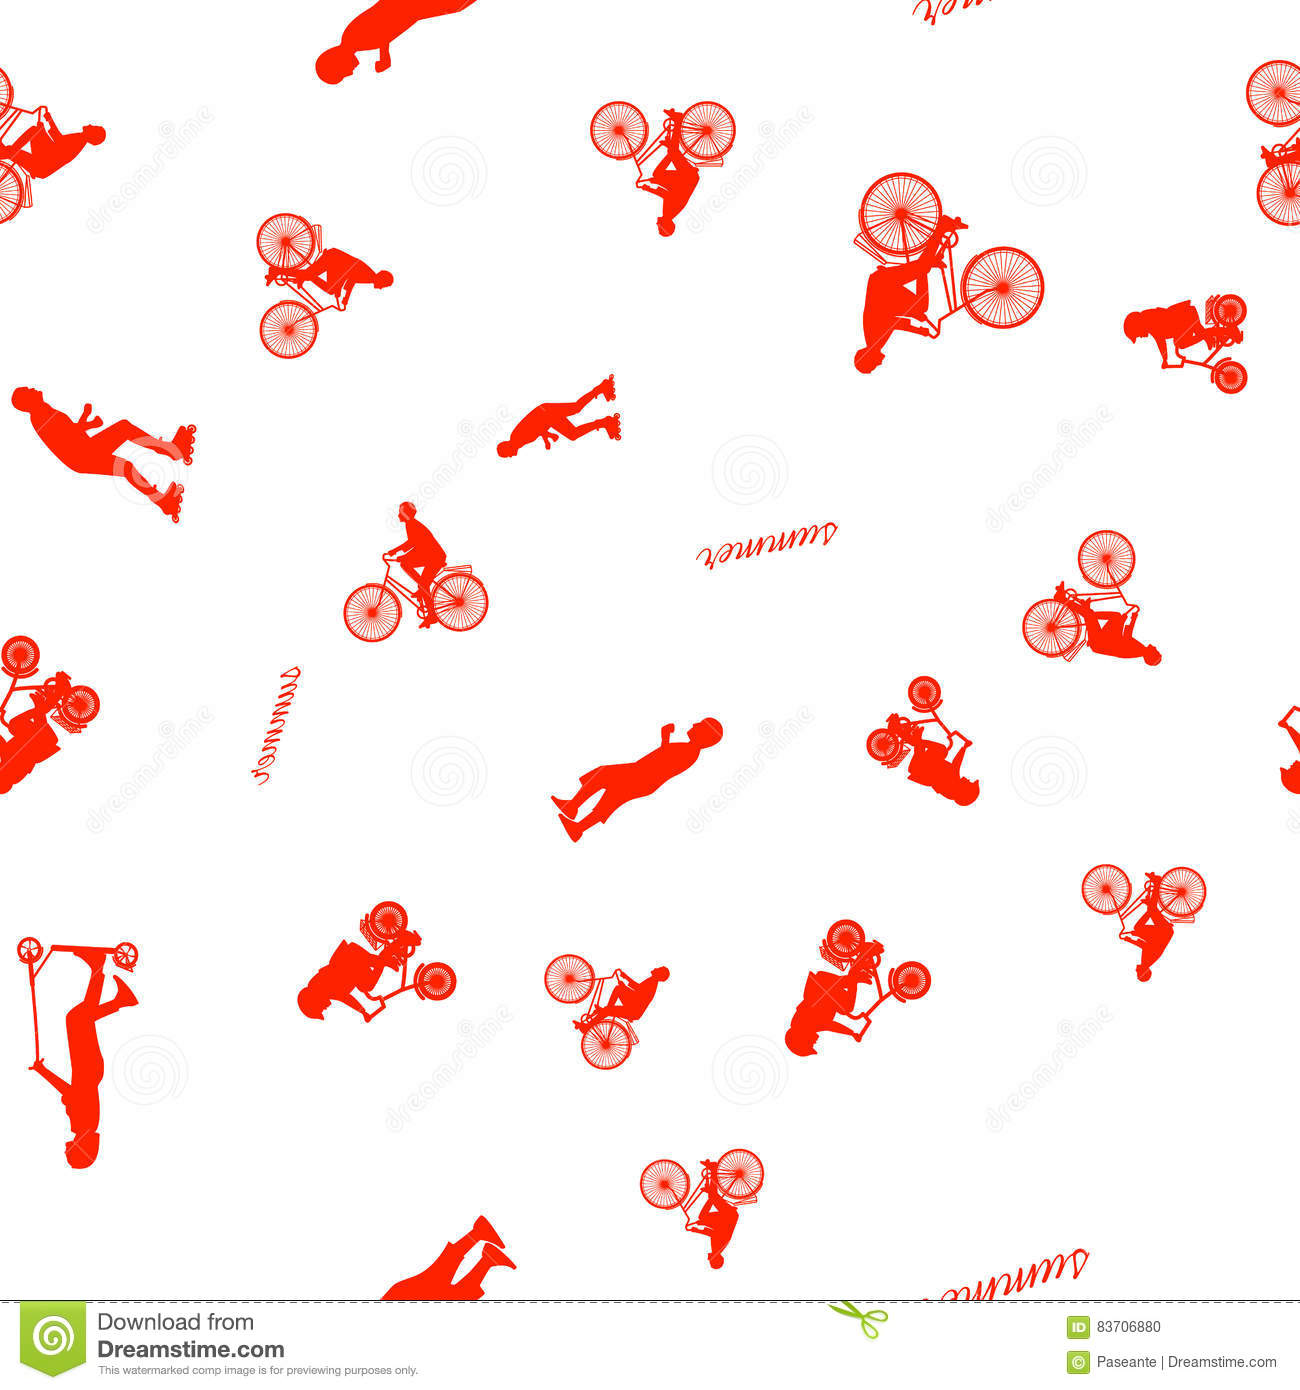 Vector Illustration Of A Seamless Pattern With The Images Of People Active Summer Vacationers, Flat Style Stock Illustration